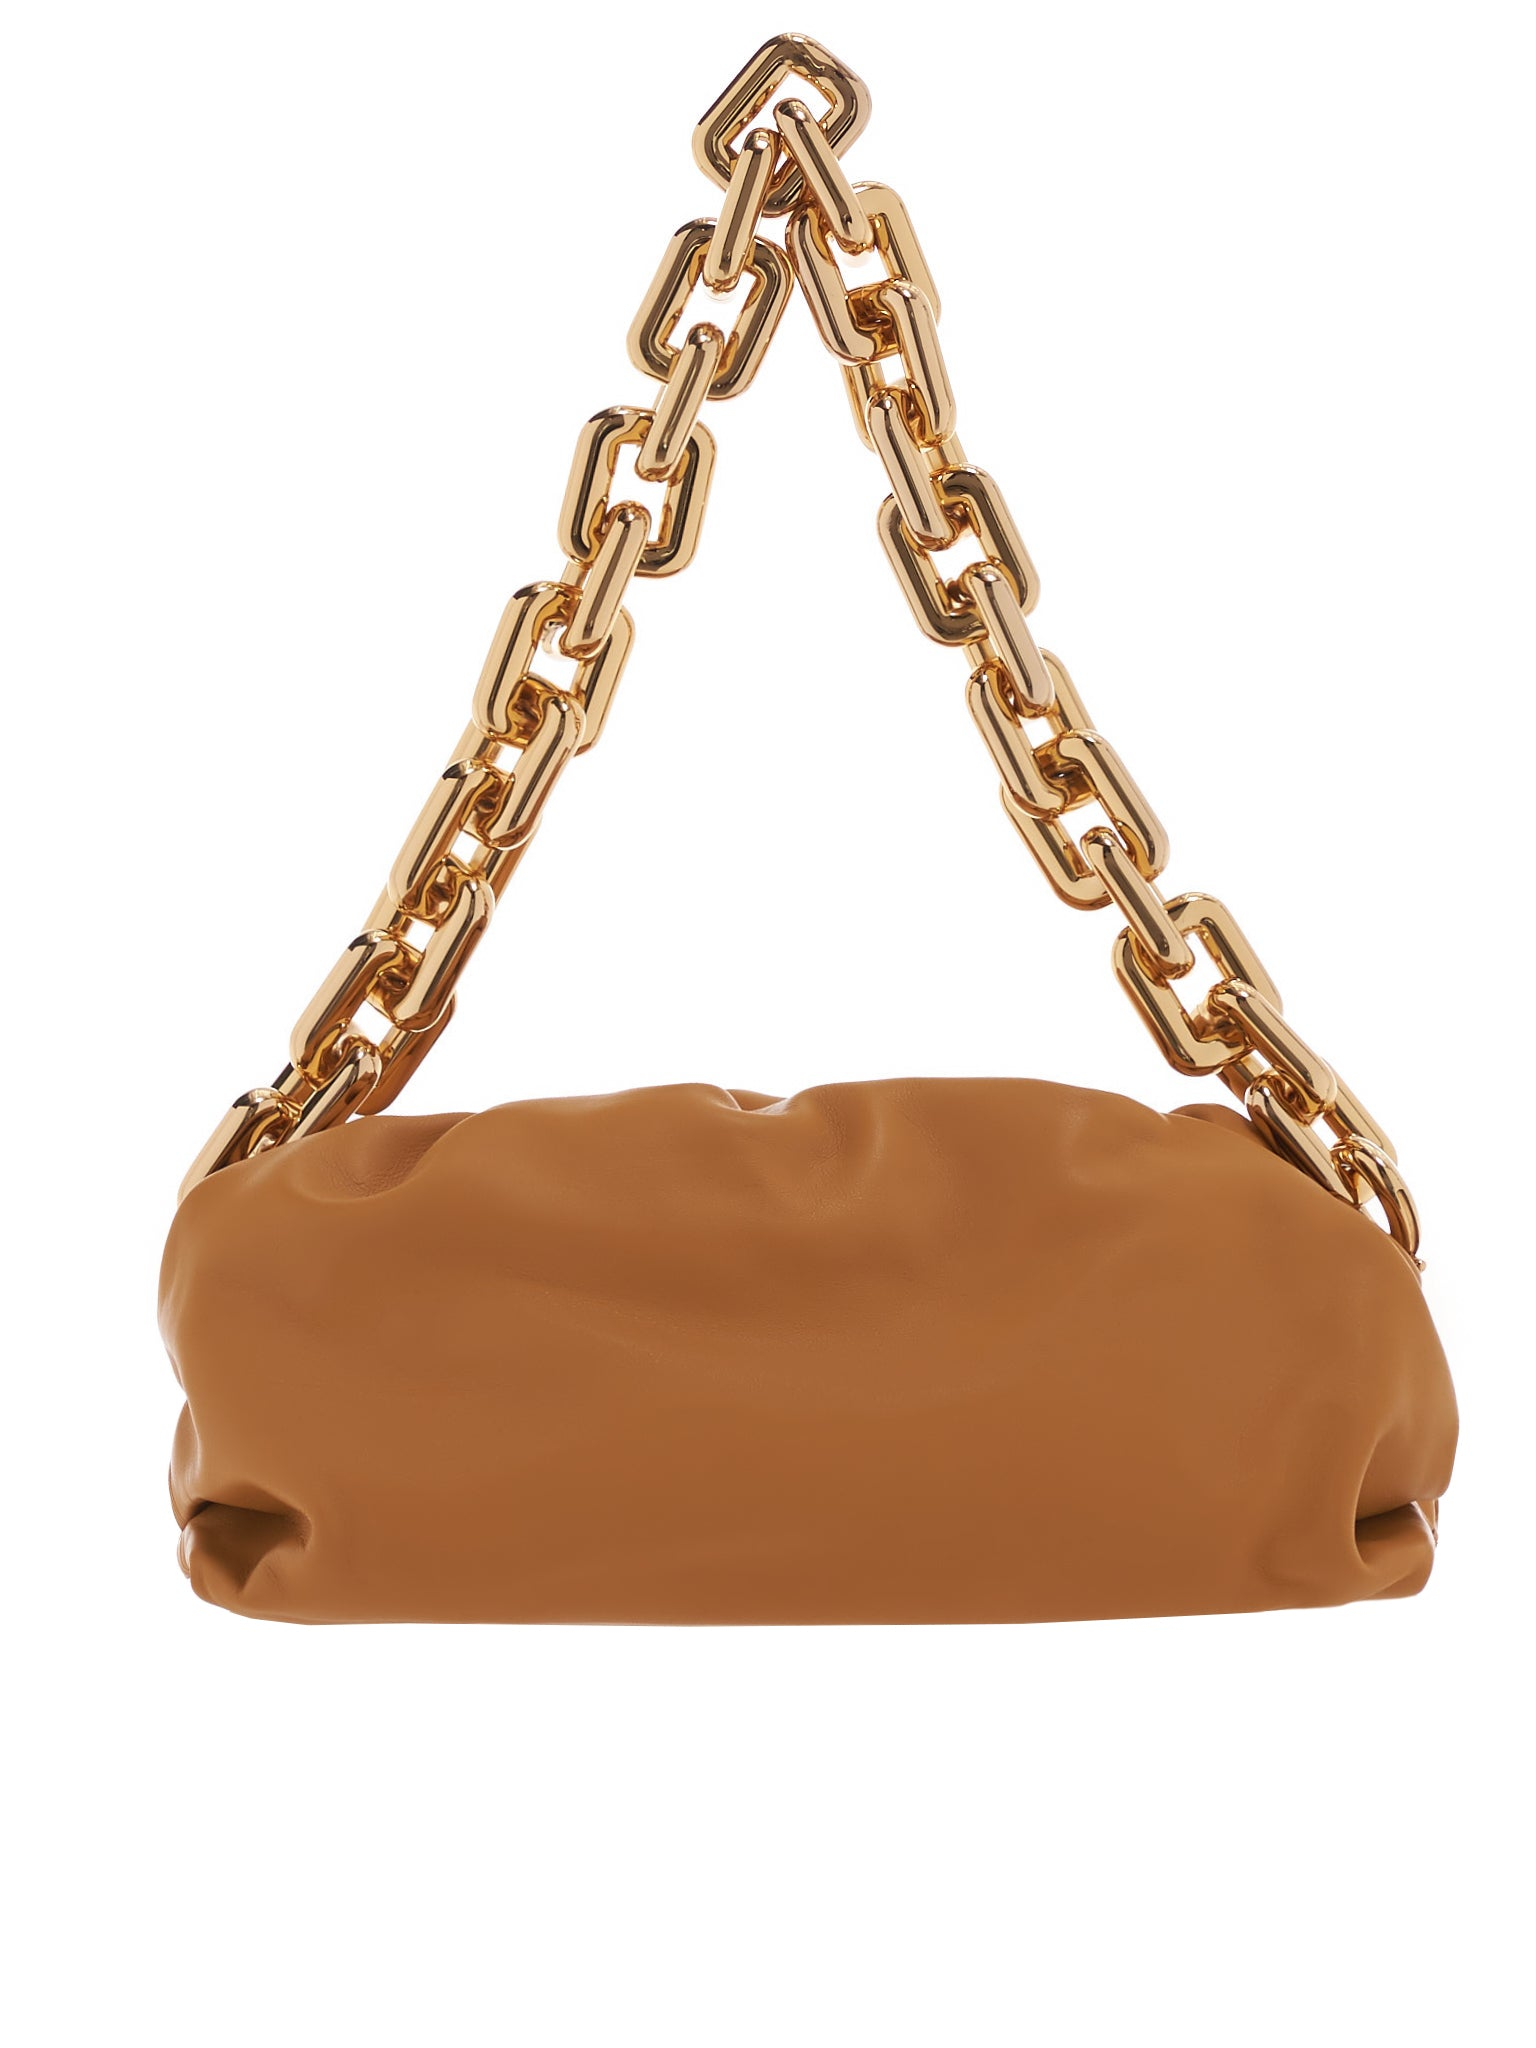 The Chain Pouch (620230VCP40-7687-BURNED-ORANGE)